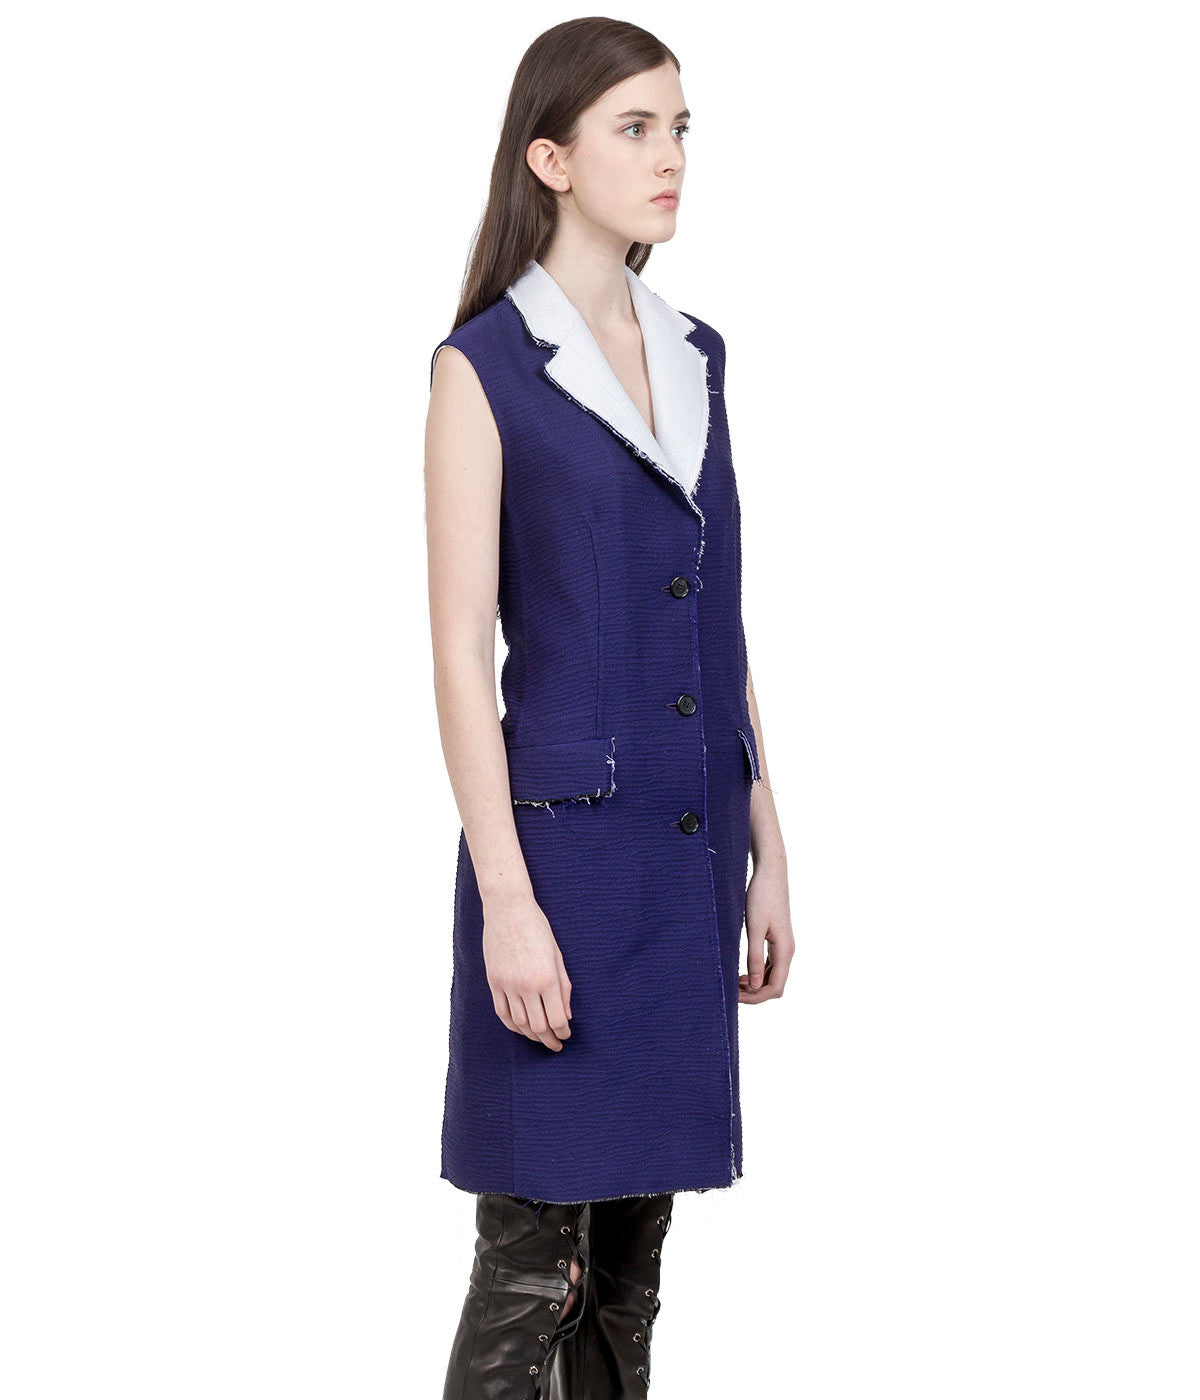 Purple Sleeveless Coat